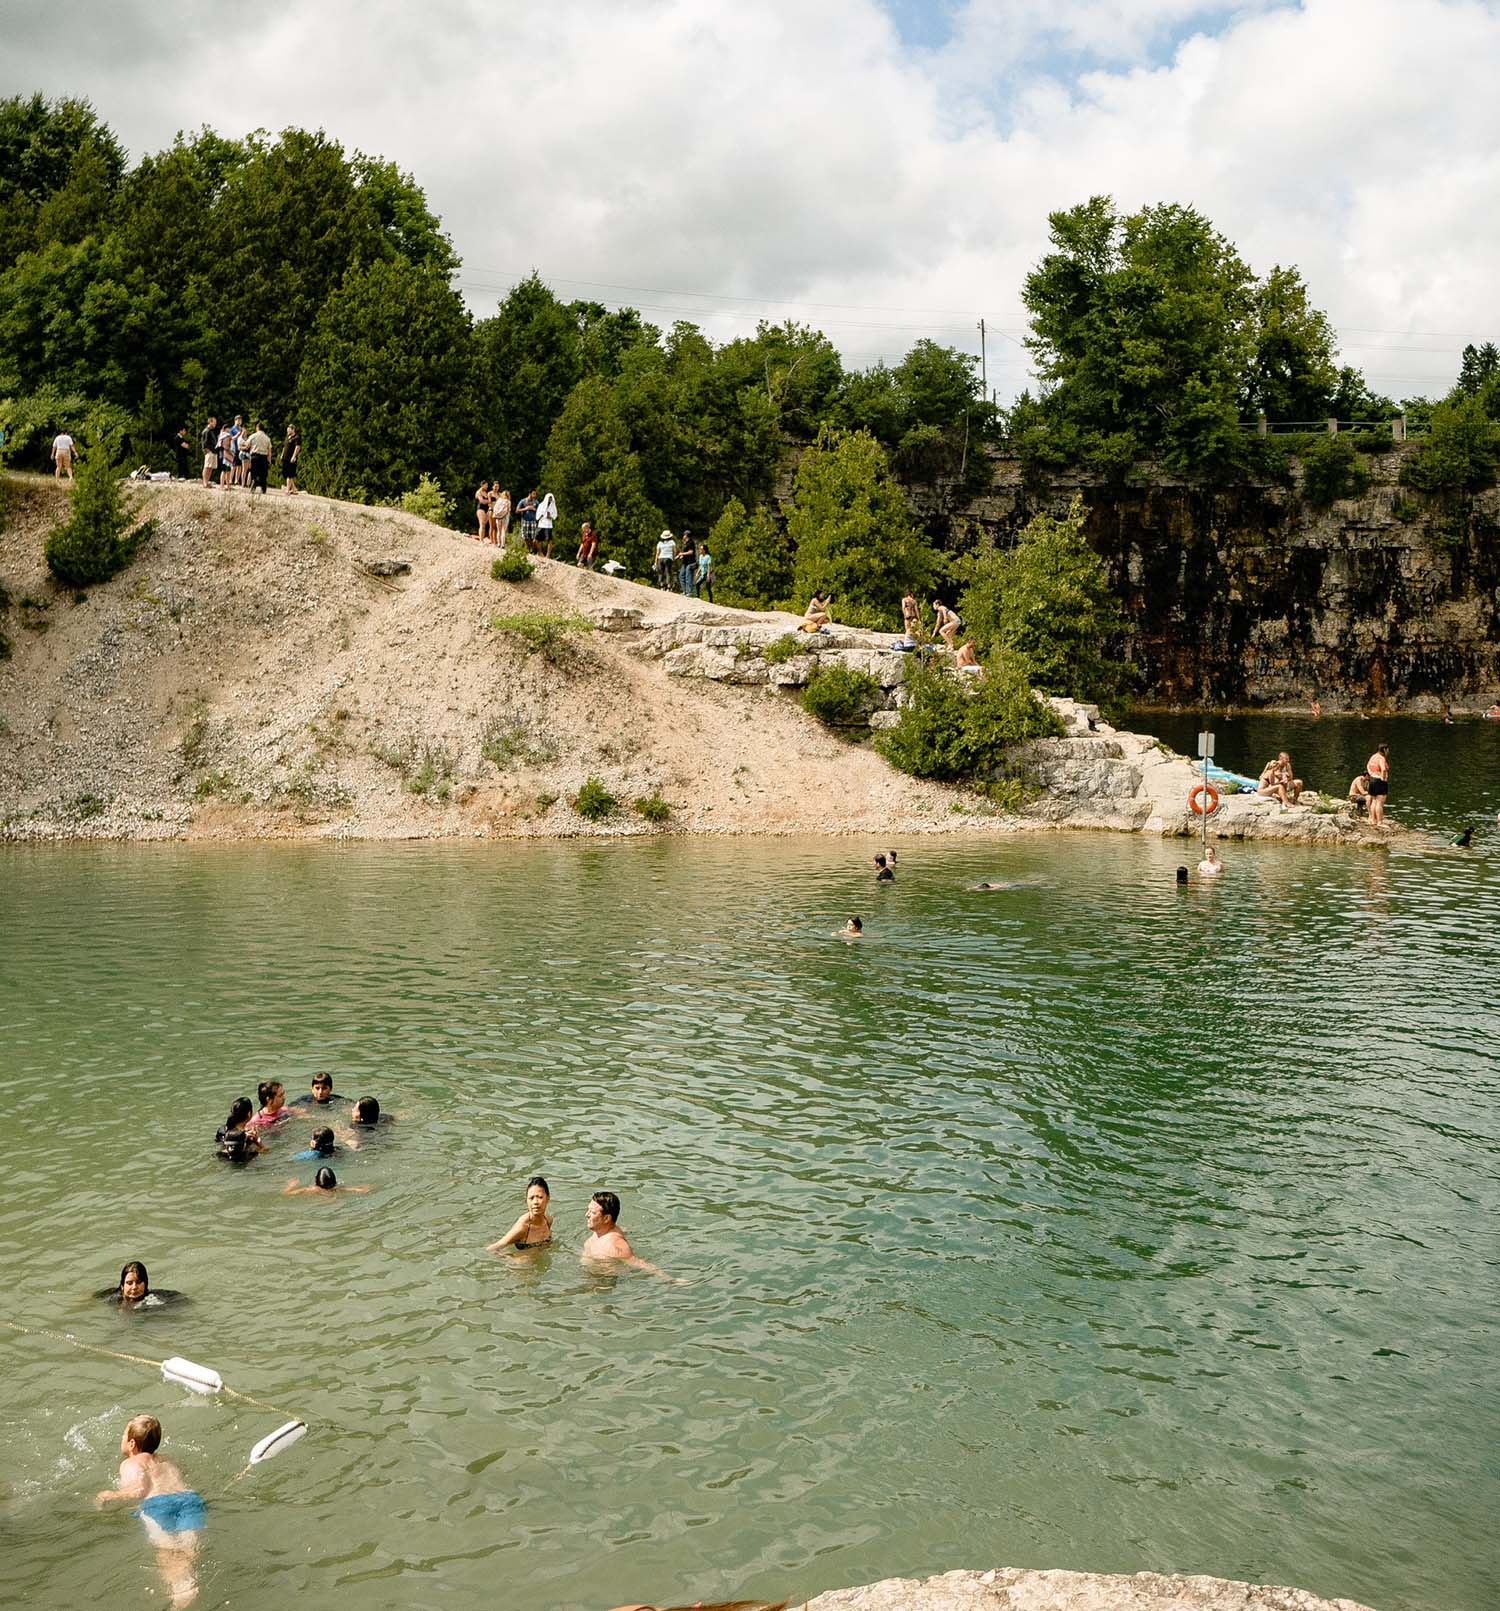 Swim smartly and you will have an enjoyable time on Lake Travis.